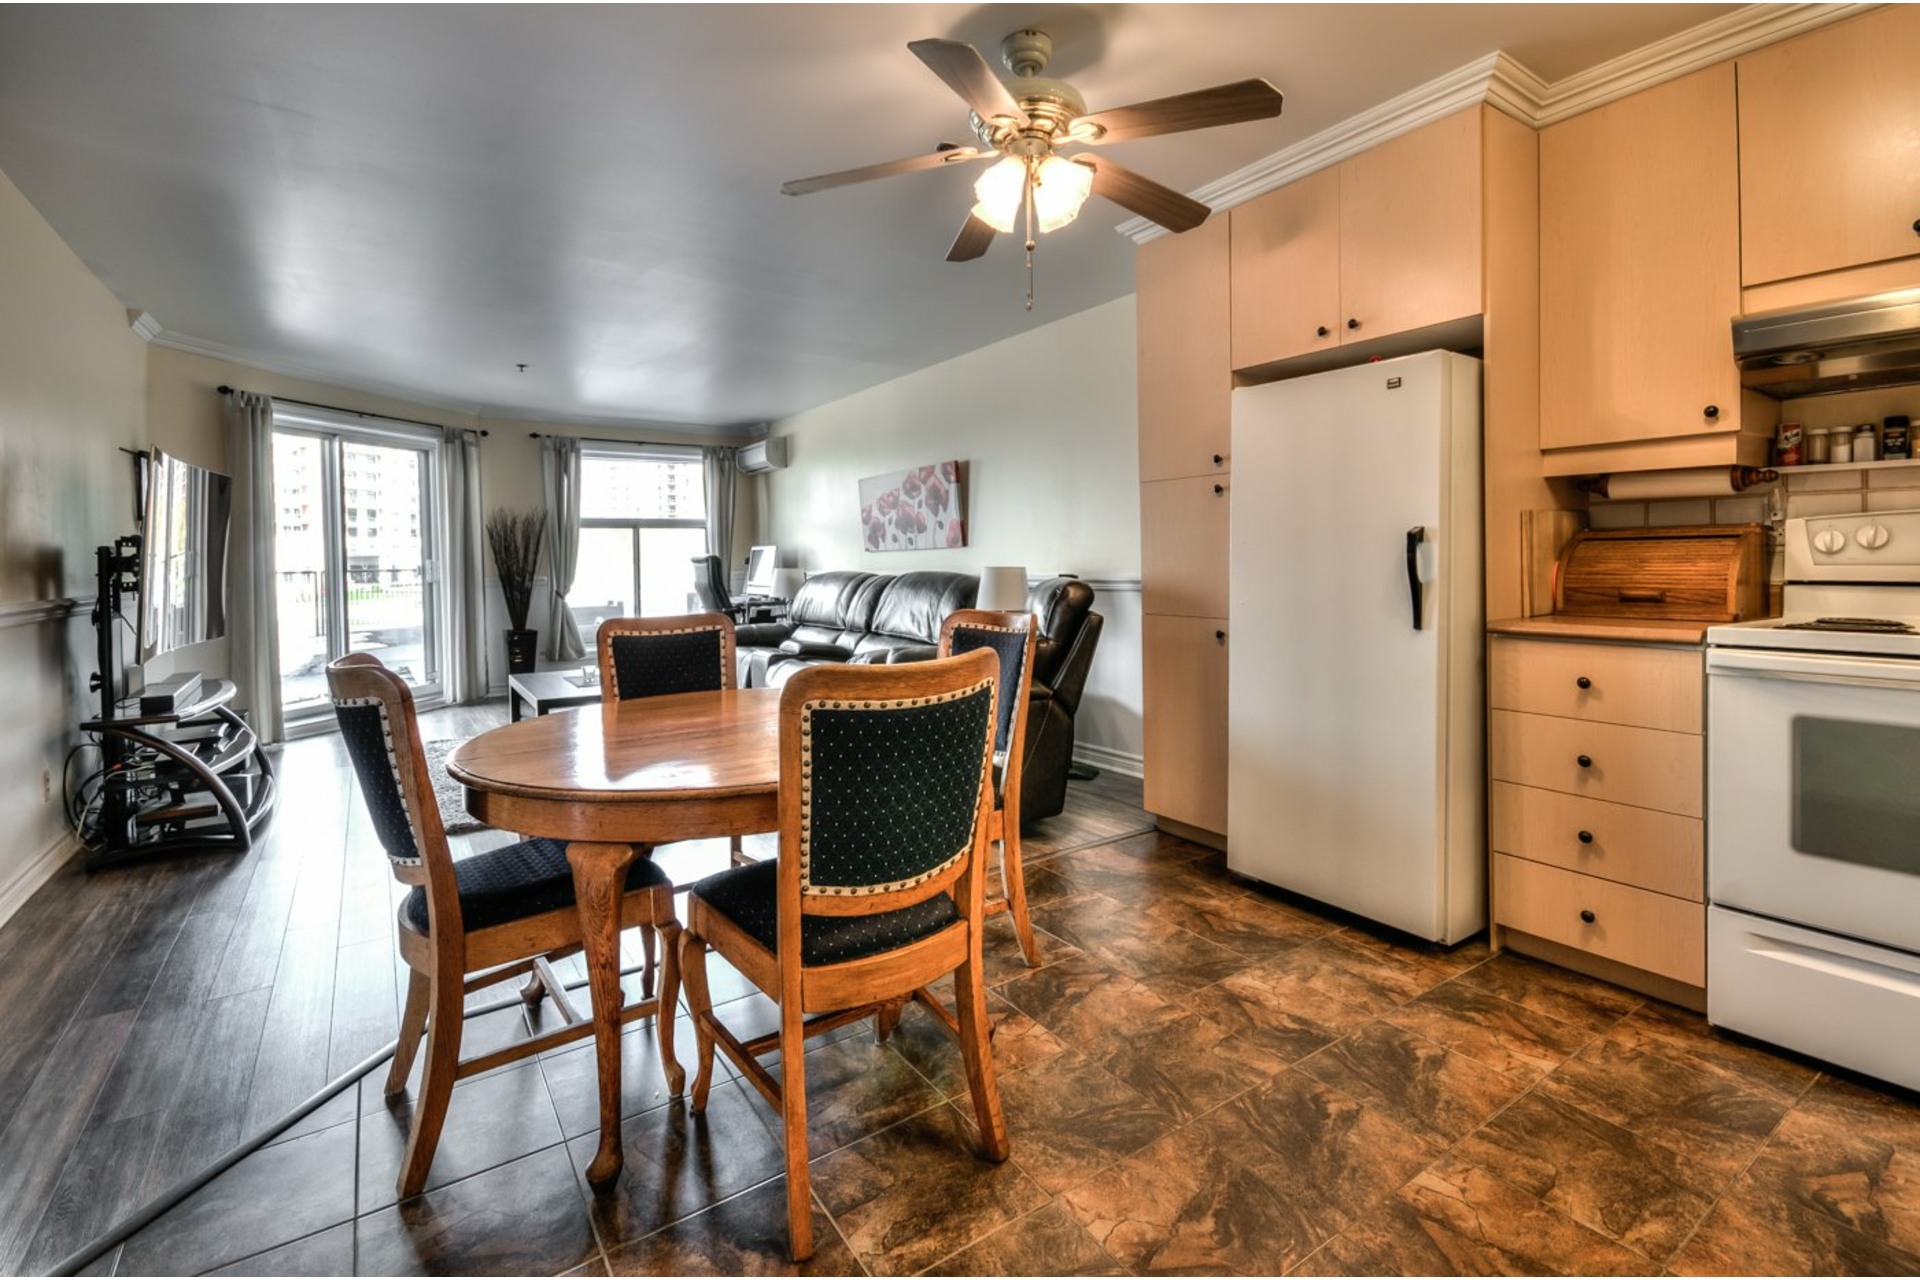 image 5 - Apartment For sale Brossard - 5 rooms